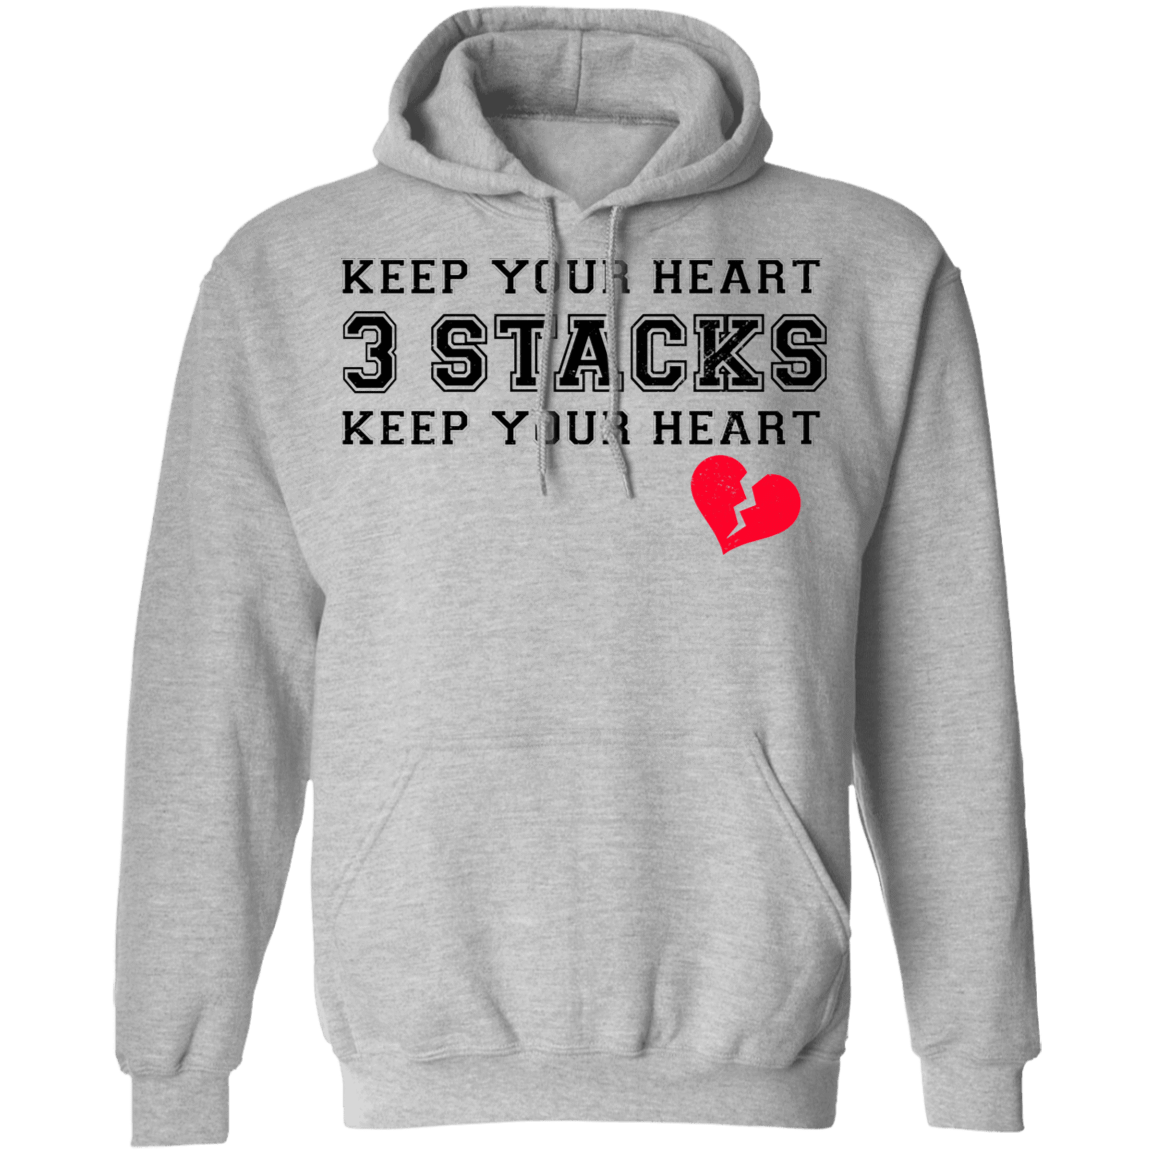 Keep Your Heart 3 Stacks T-Shirts, Hoodies 541-4741-80183507-23111 - Tee Ript